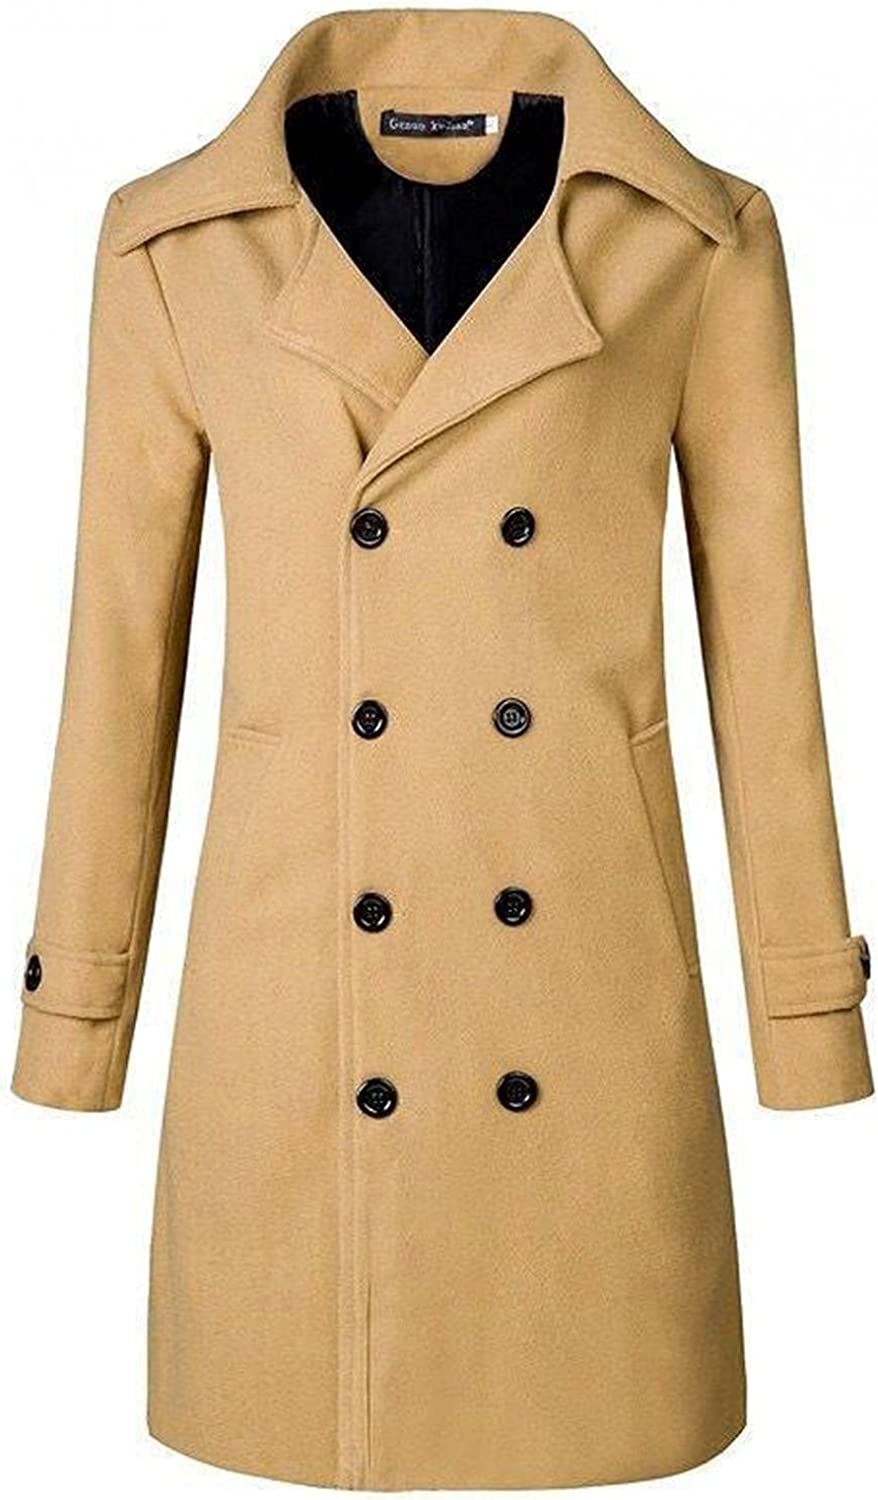 Men's Trench Coats Double Breasted Long Jackets Casual Slim Fit Business Overcoats Thicken Thermal Windproof Outwears